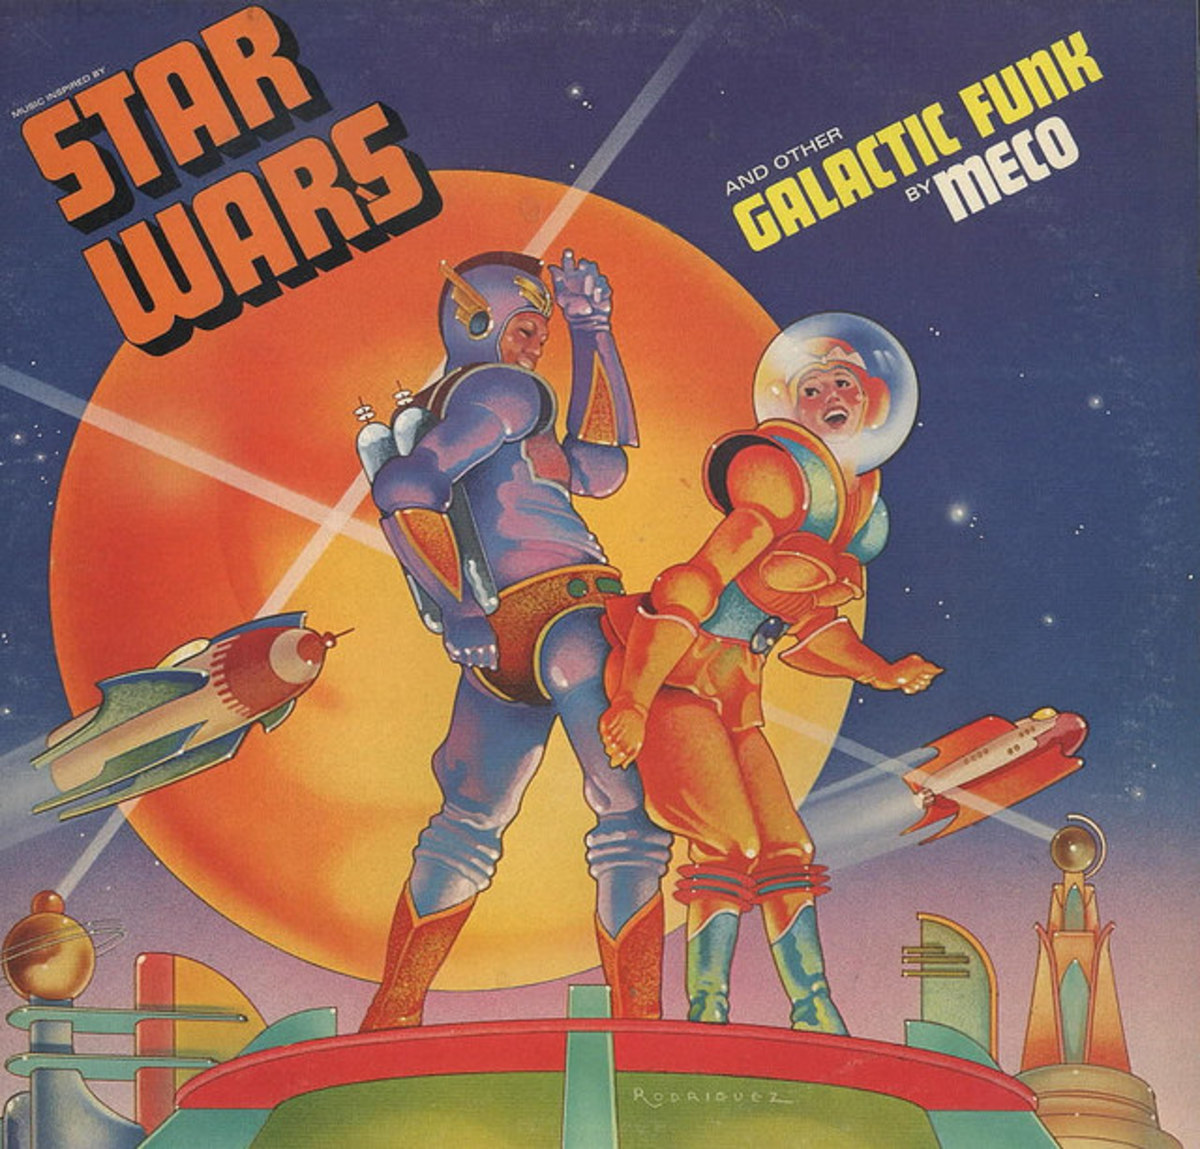 "Meco ""Star Wars and Other Galactic Funk"" Millennium Records MNLP 8001 12"" LP Vinyl Record, US Pressing (1977)"